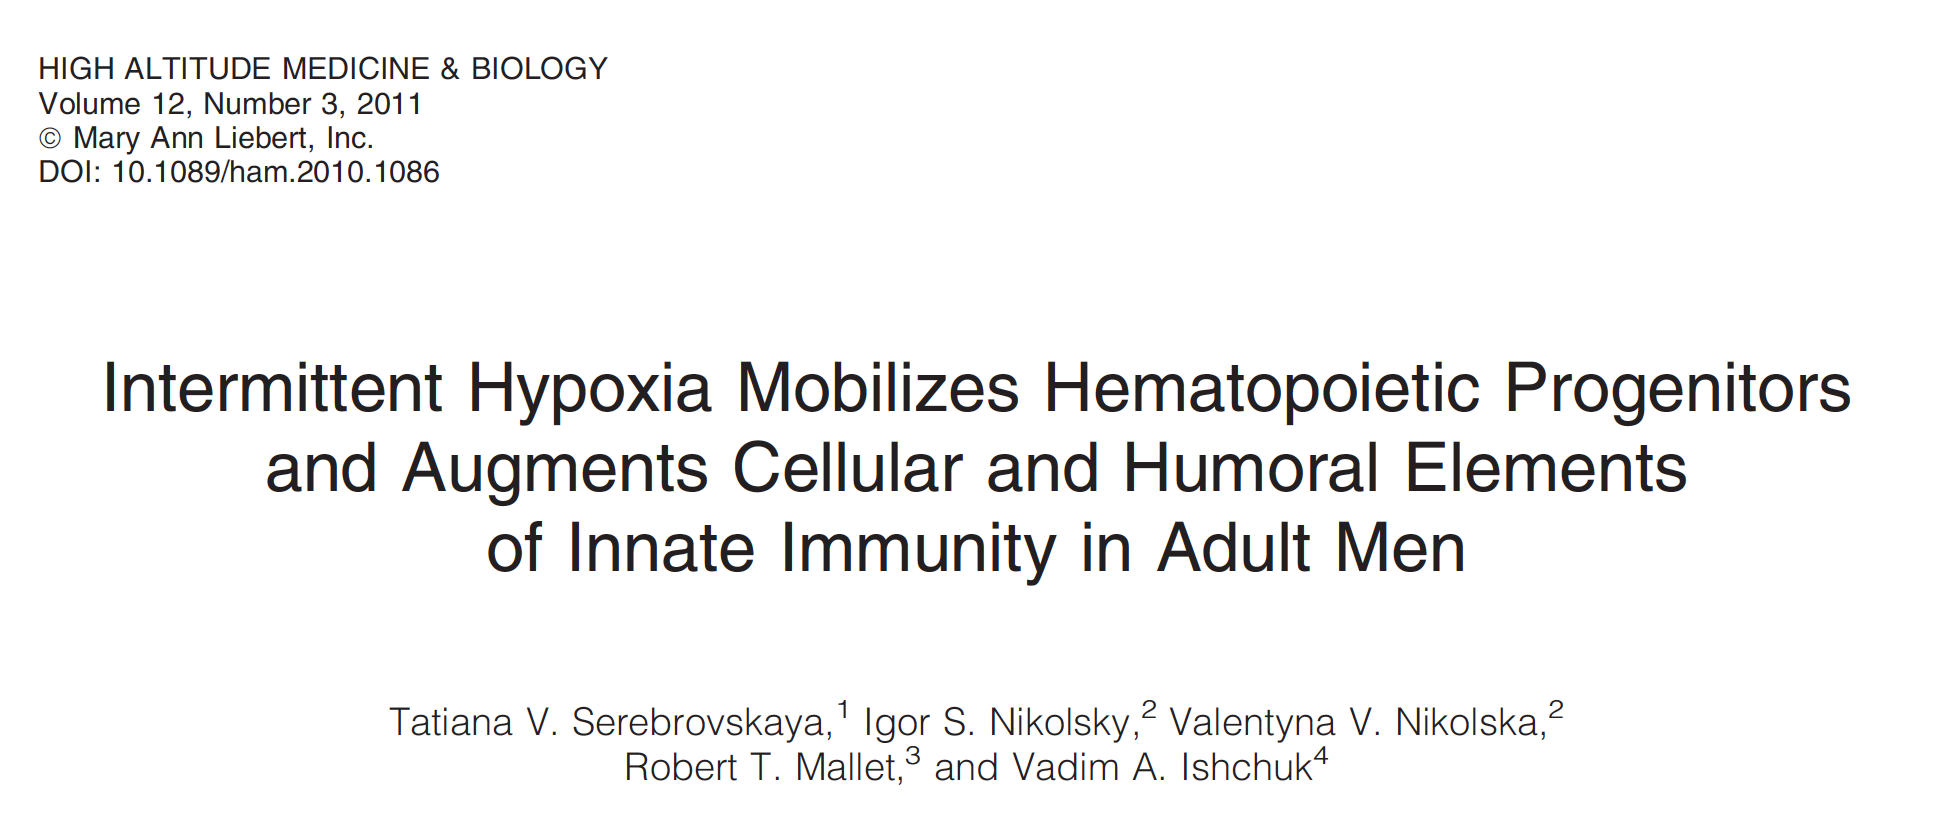 - Intermittent hypoxia improves the innate immune system and has a net anti-inflammatory effect